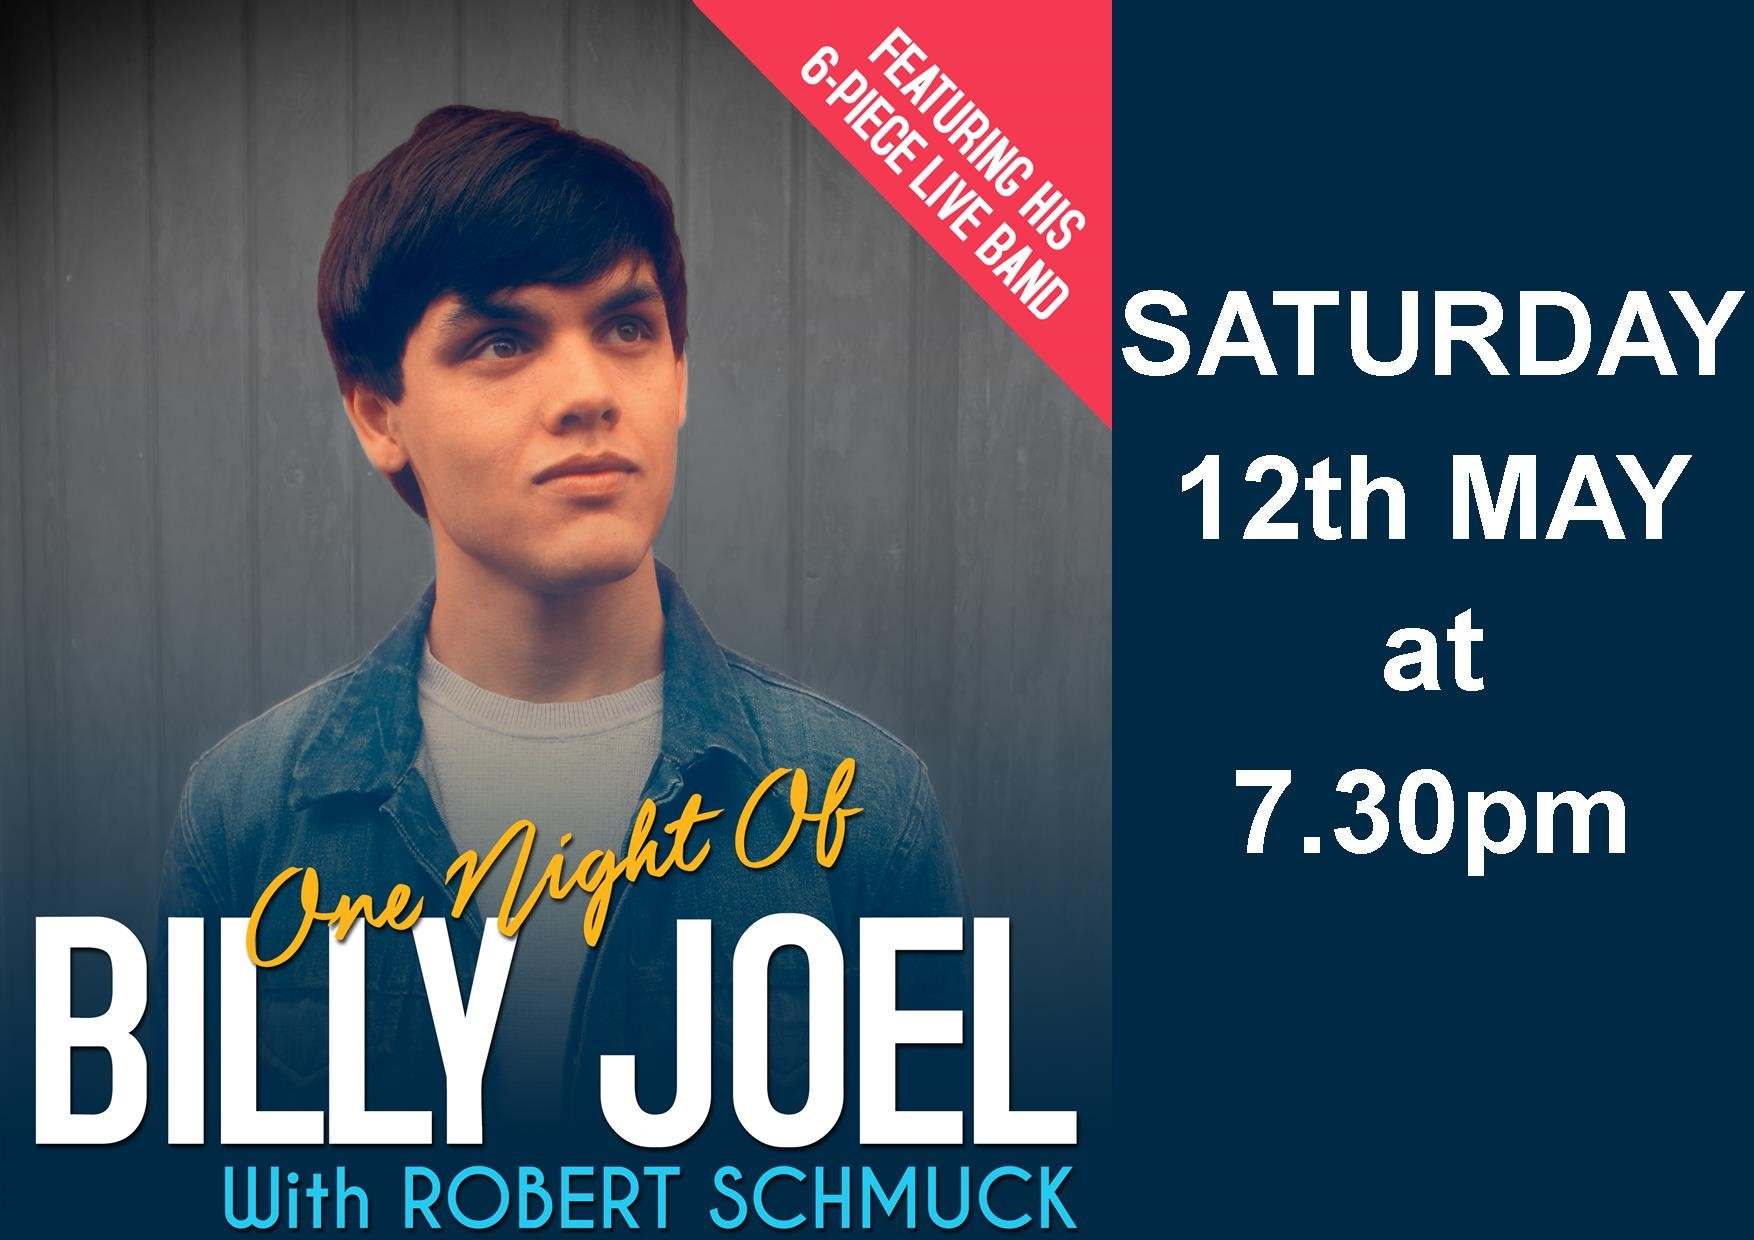 One Night of Billy Joel with Robert Schmuck